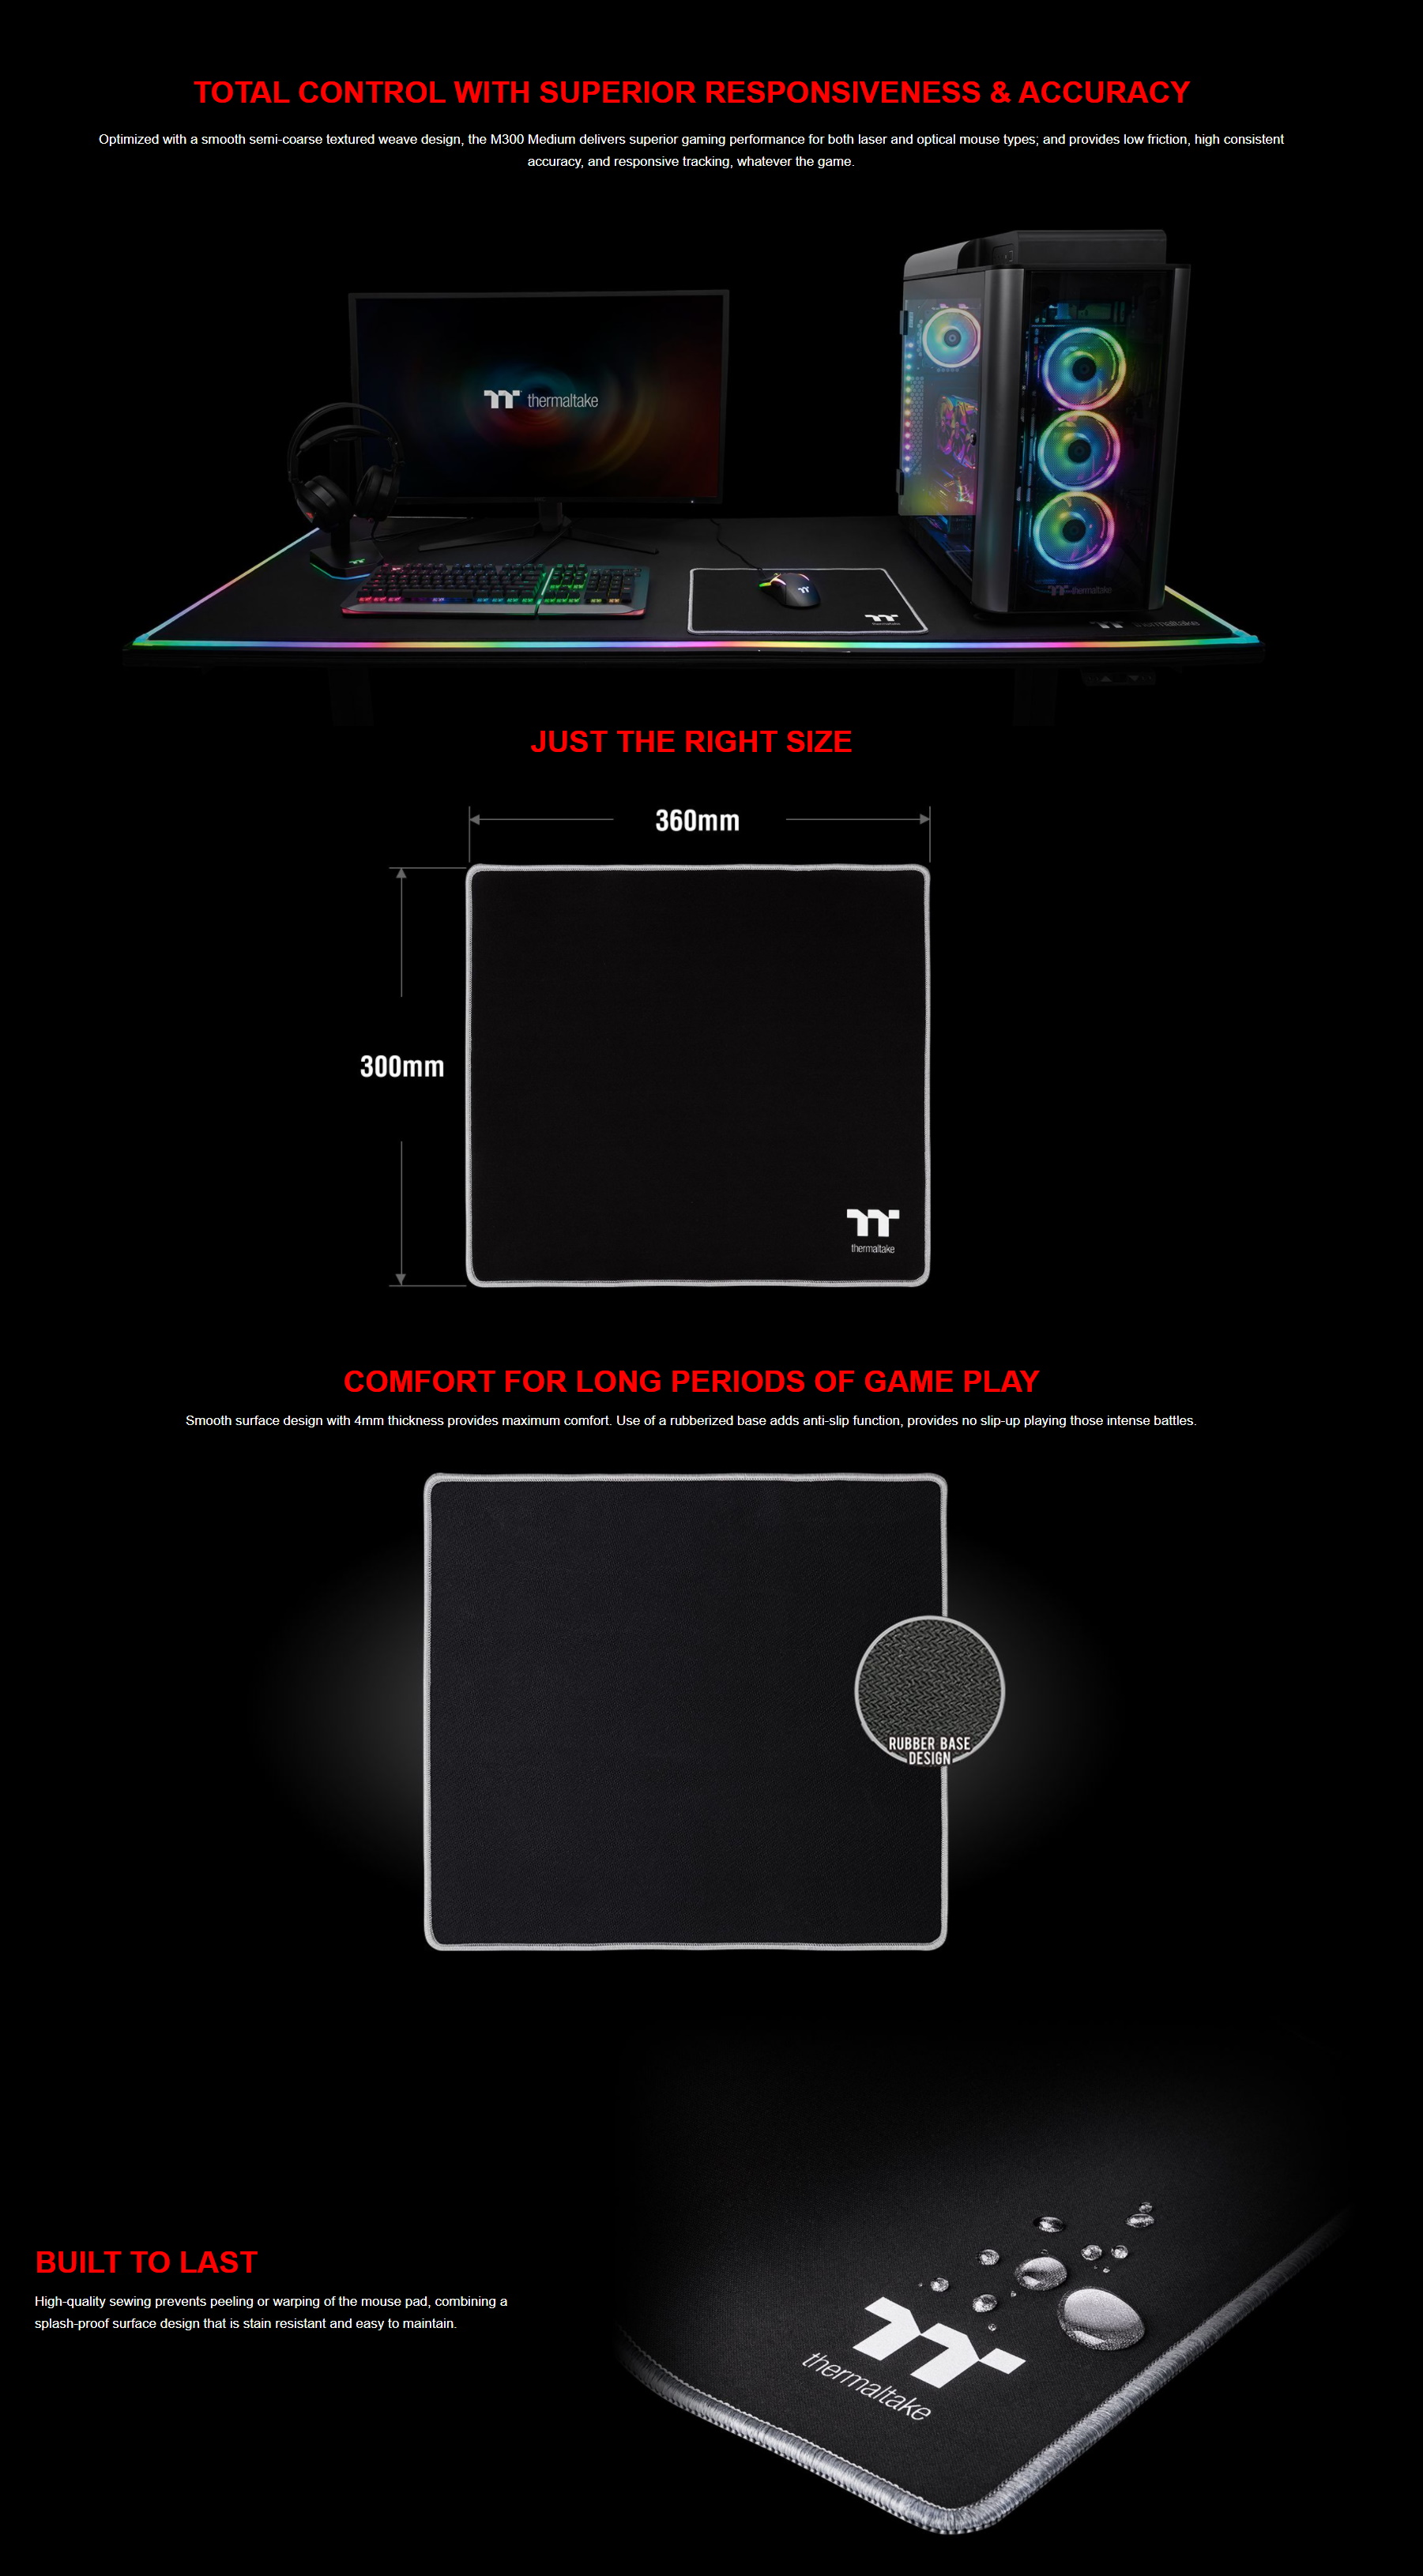 A large marketing image providing additional information about the product Thermaltake M300 Medium Gaming Mouse Pad - Additional alt info not provided